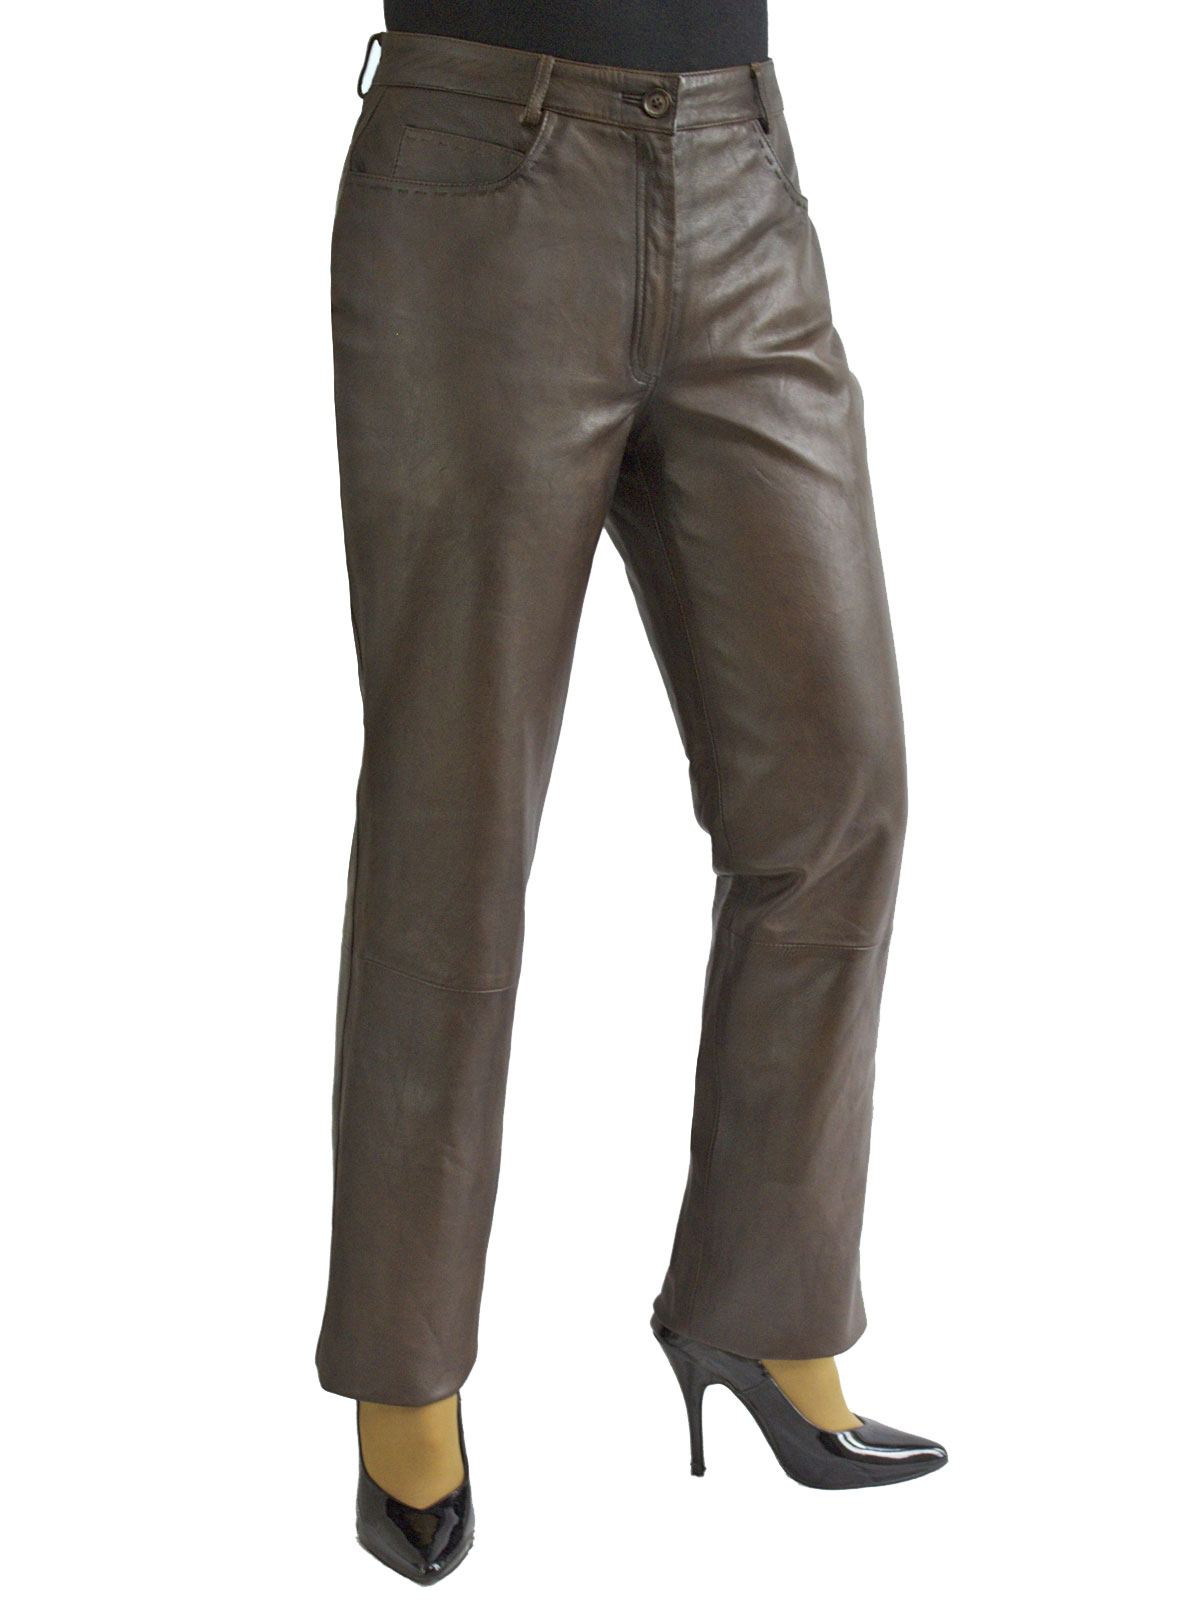 Womens Brown Leather Trousers Jeans